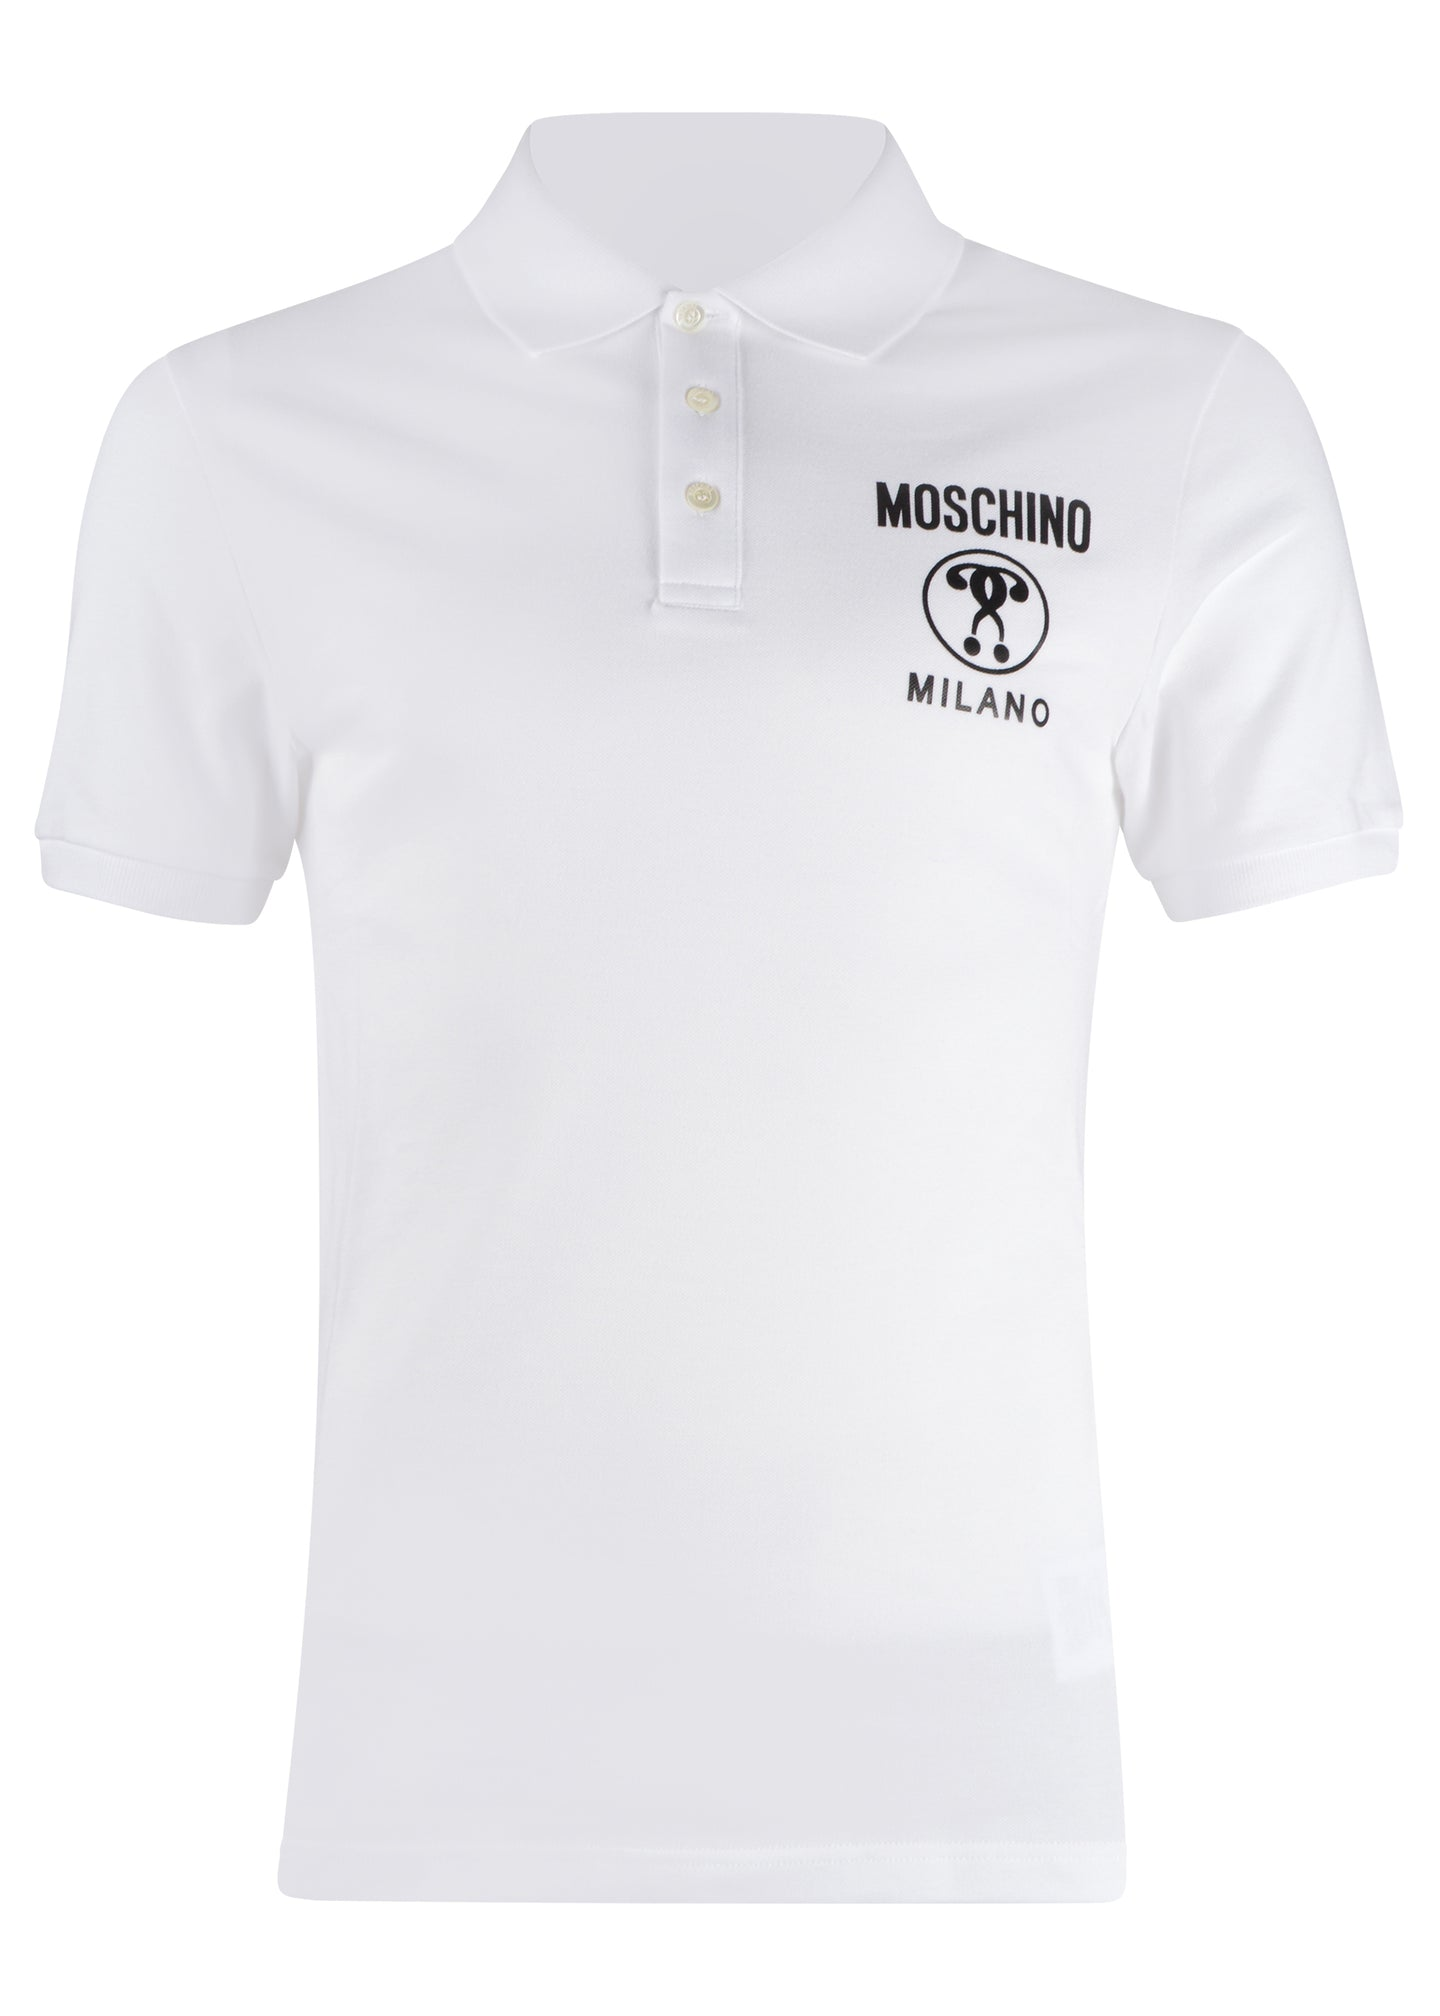 Moschino - Double Question Mark Moschino Couture Milano Polo Shirt - 200029 - White